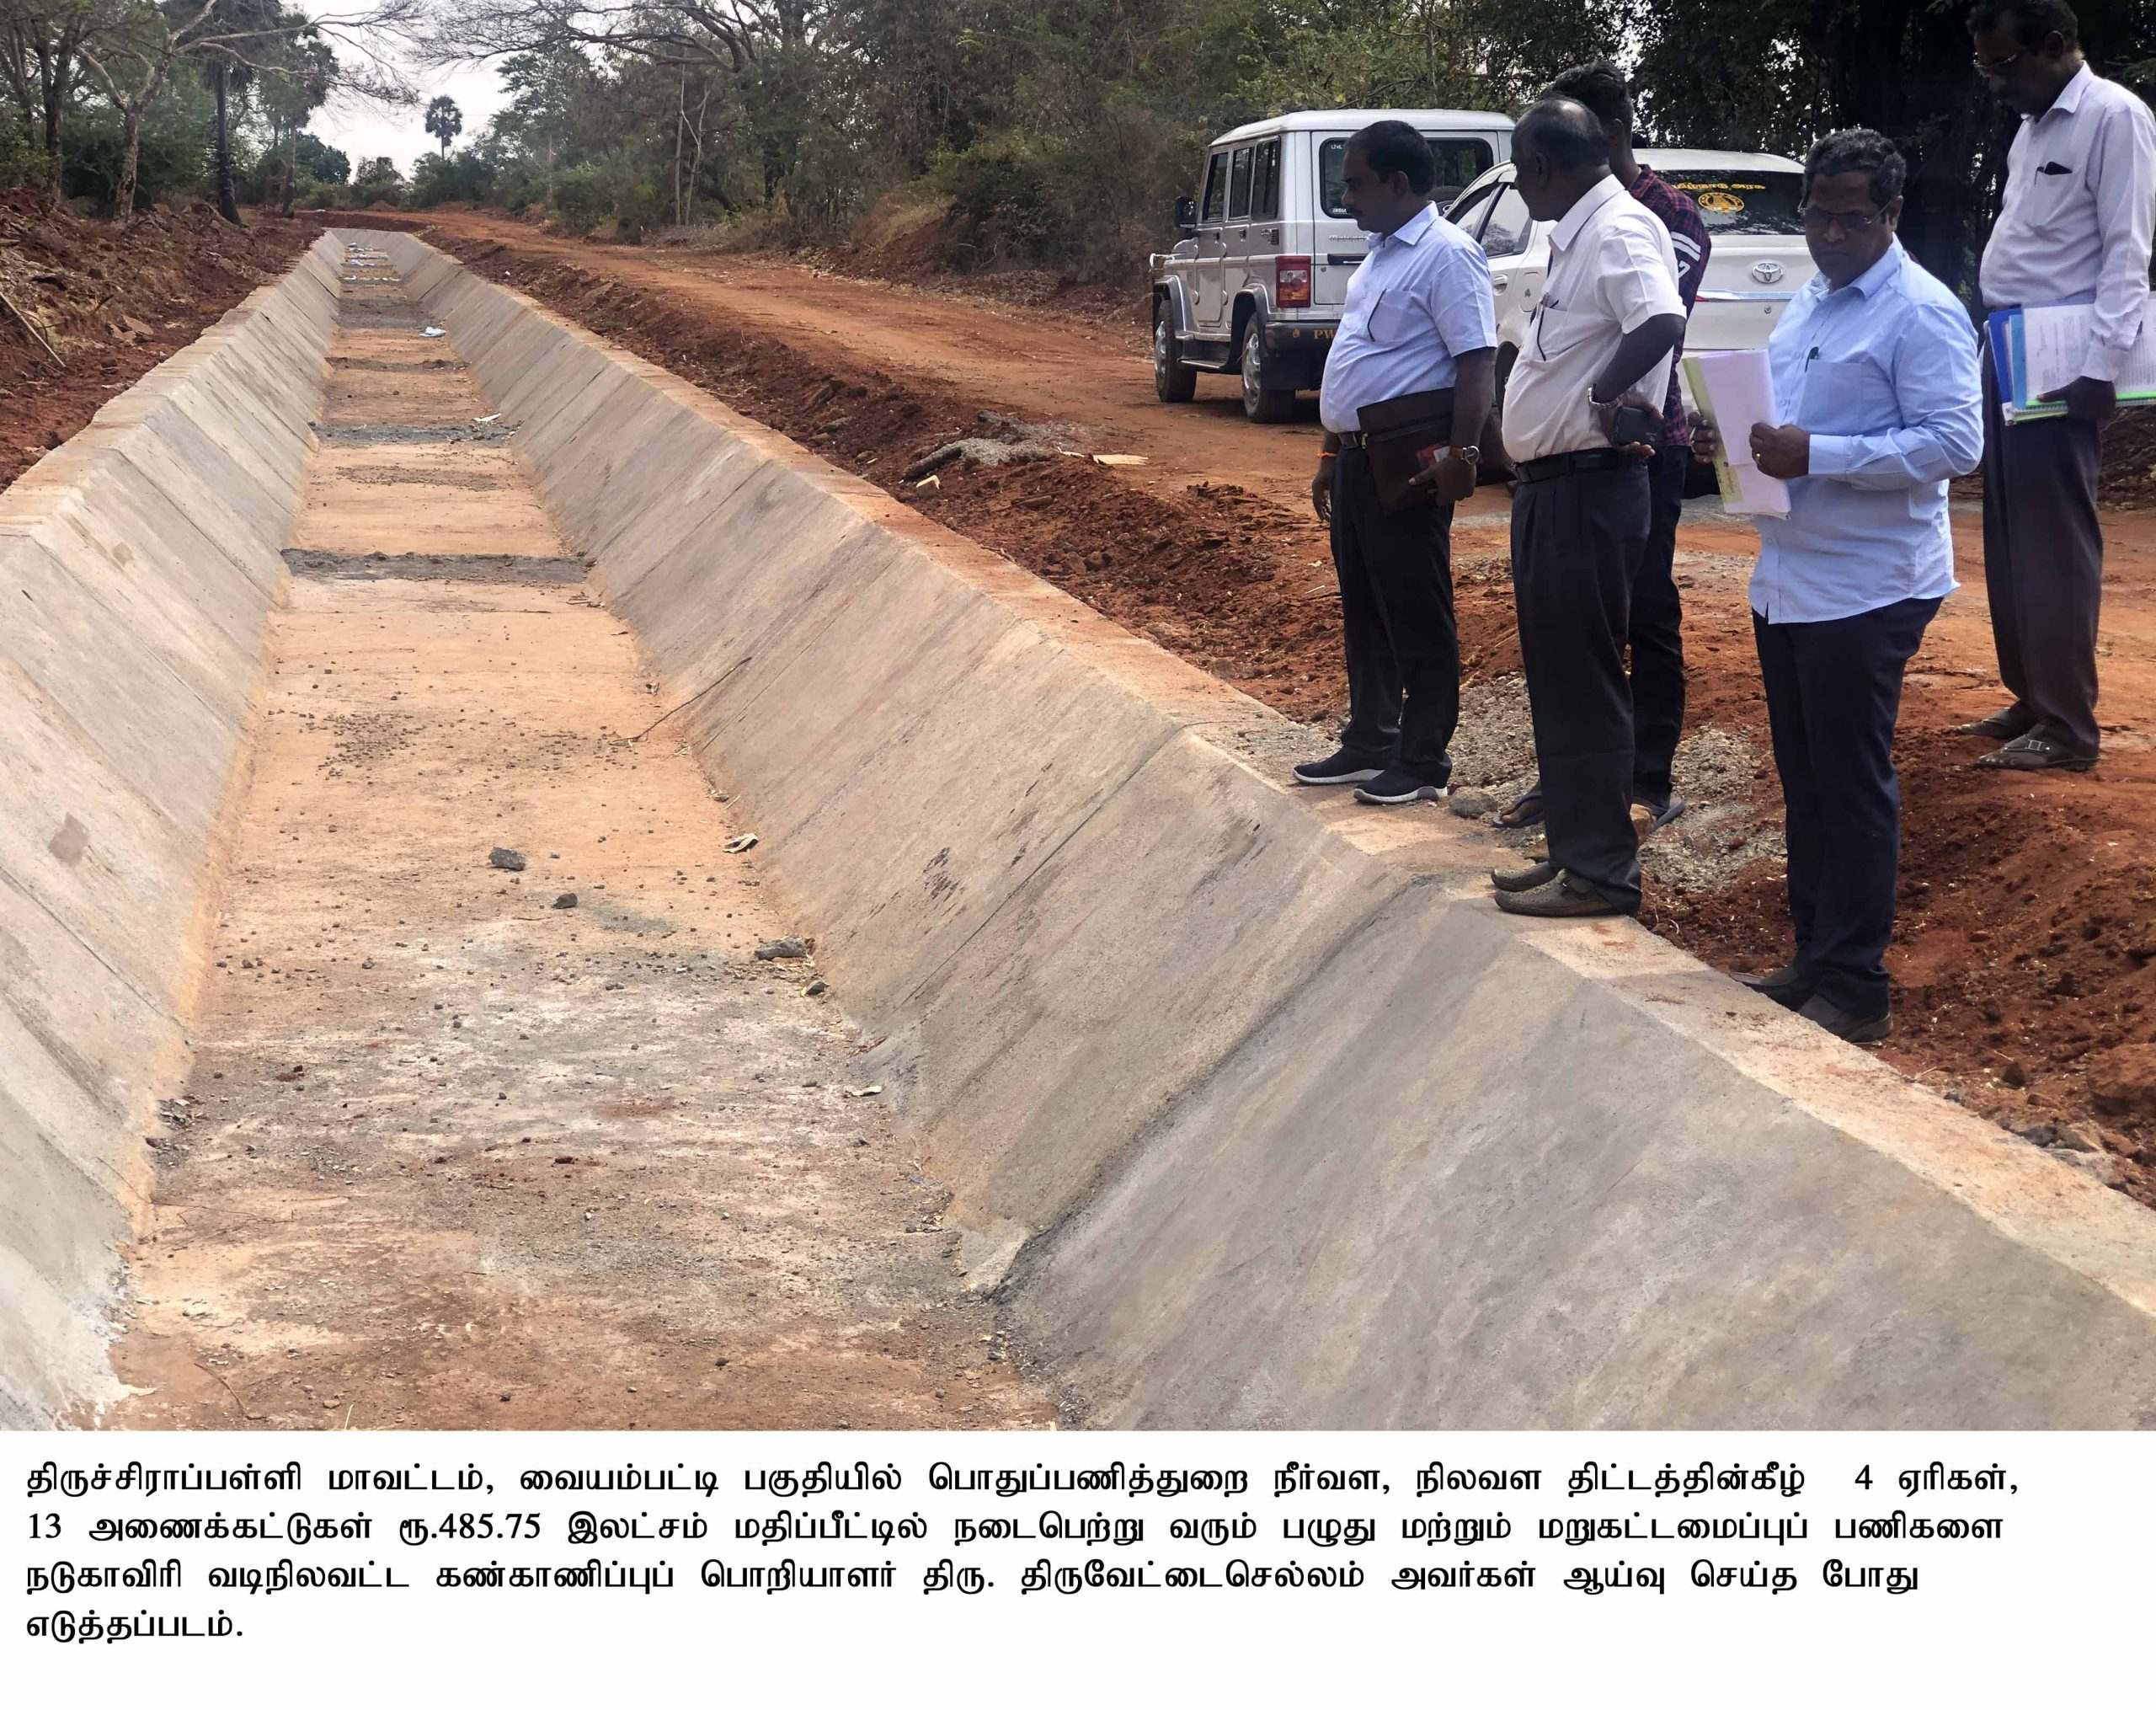 Superintendent Engineer PWD Inspected the Vaiyampatti Block works